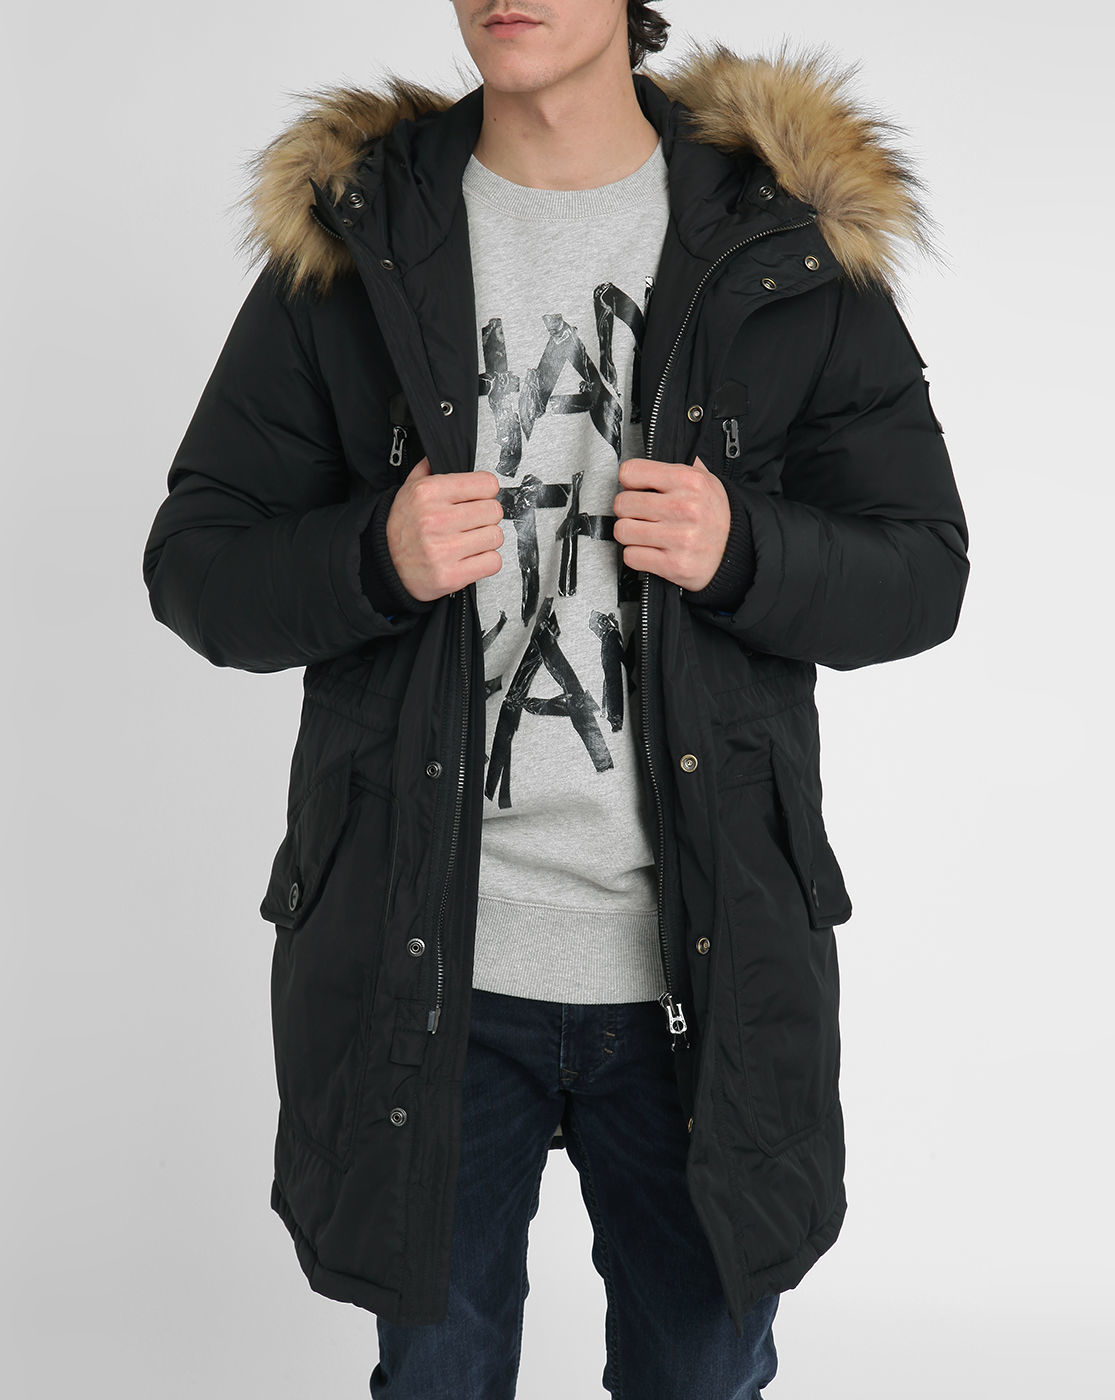 Mens Hooded Bomber Parka with Detachable Faux Fur Hood Trim Keeping this secret is one of the ways we keep bringing you top designers and brands at .